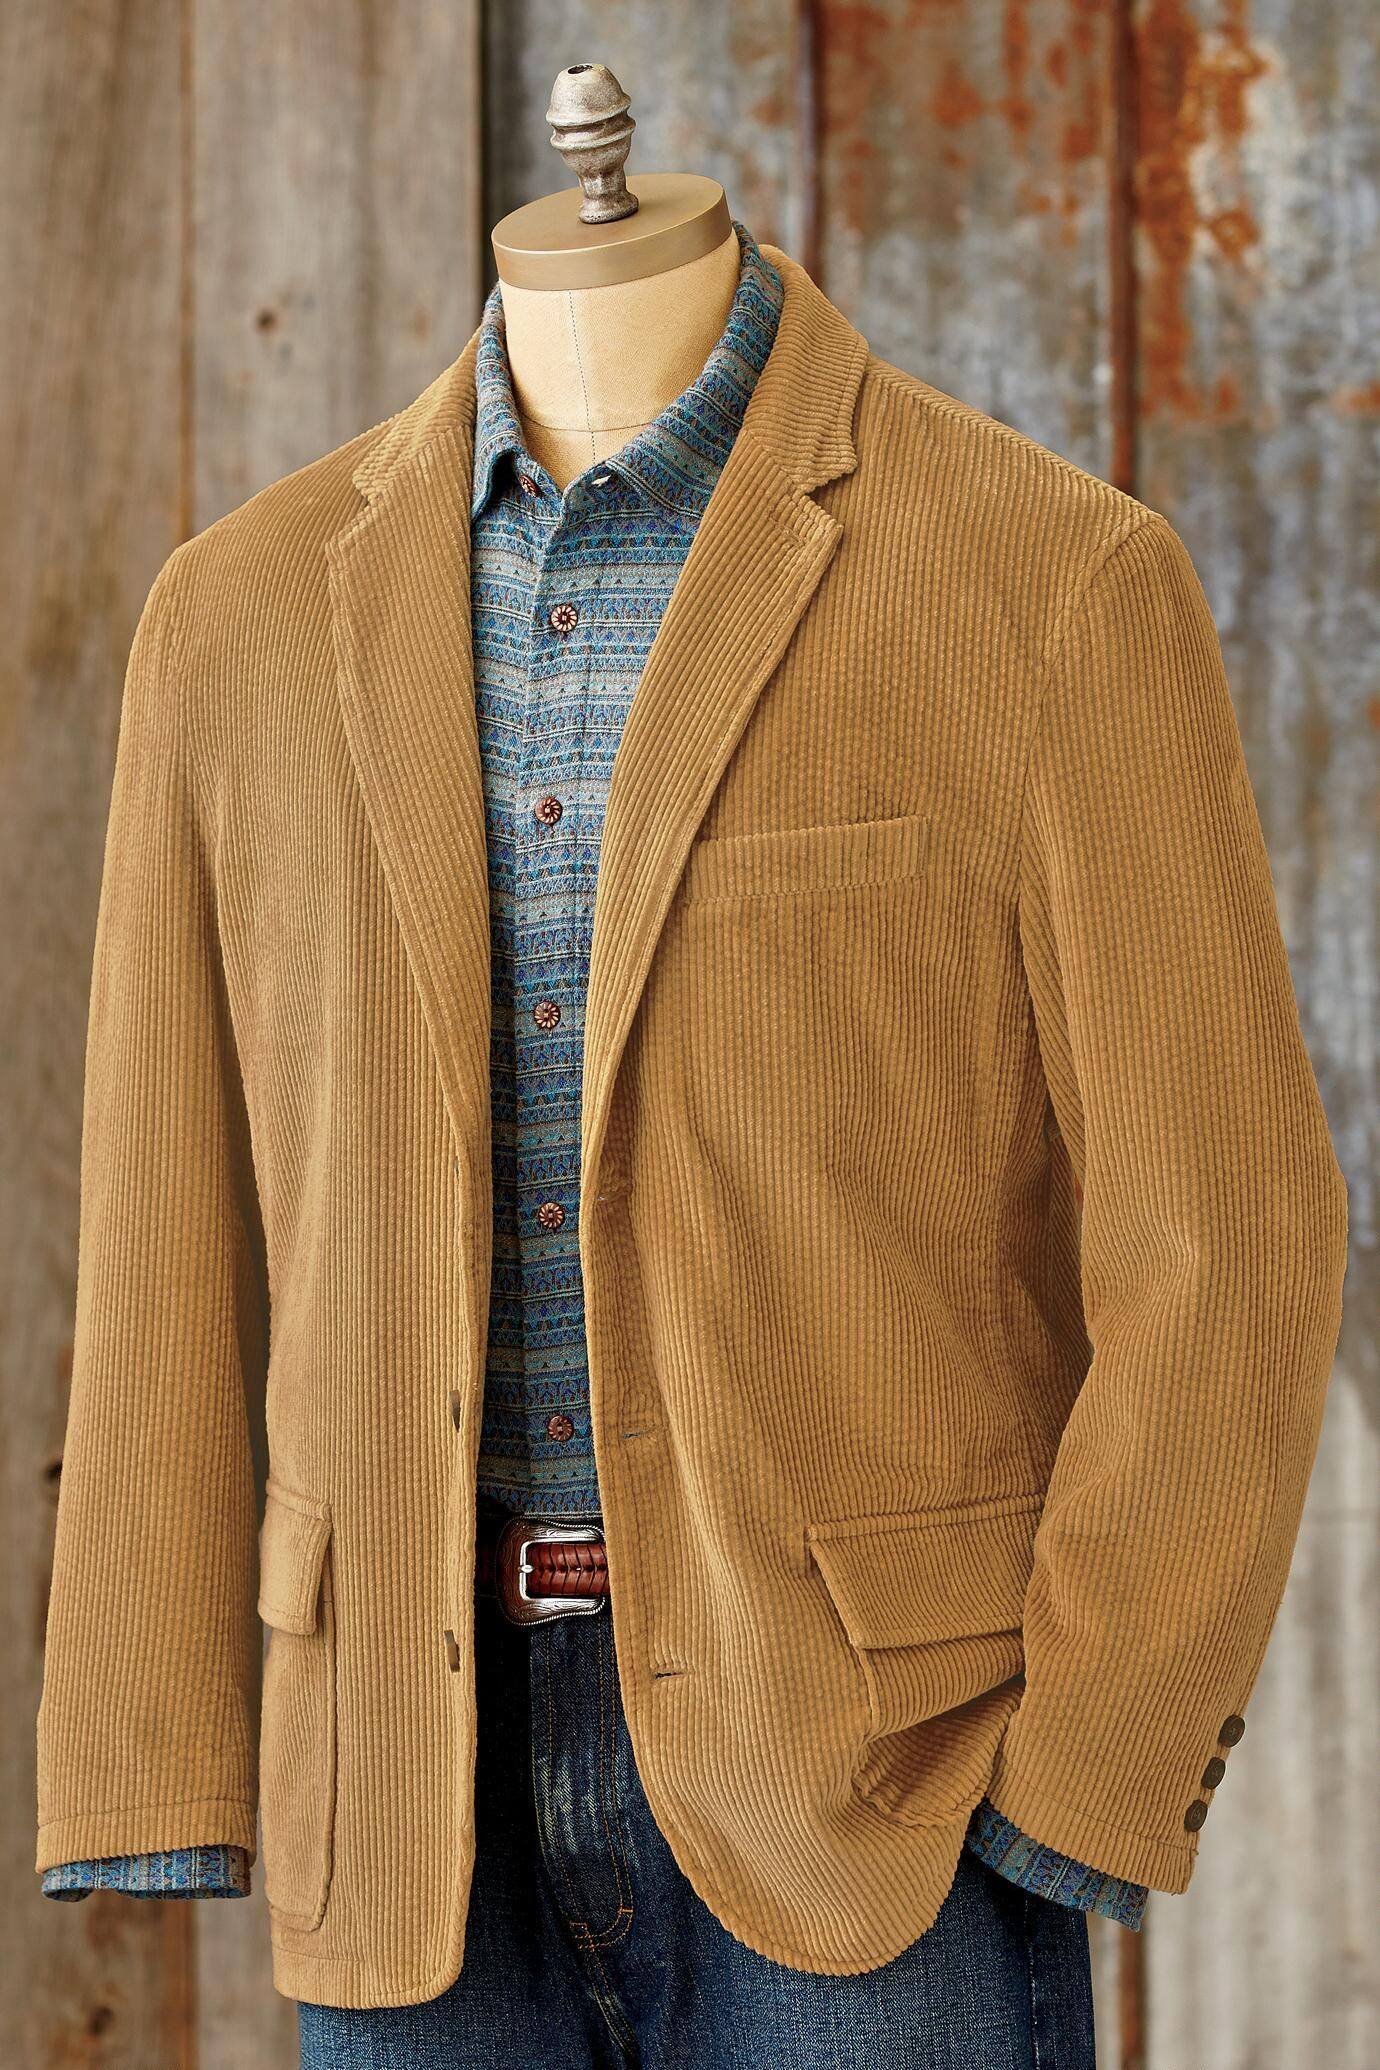 Manana Cord Sport Coat (With images) Mens fashion blazer